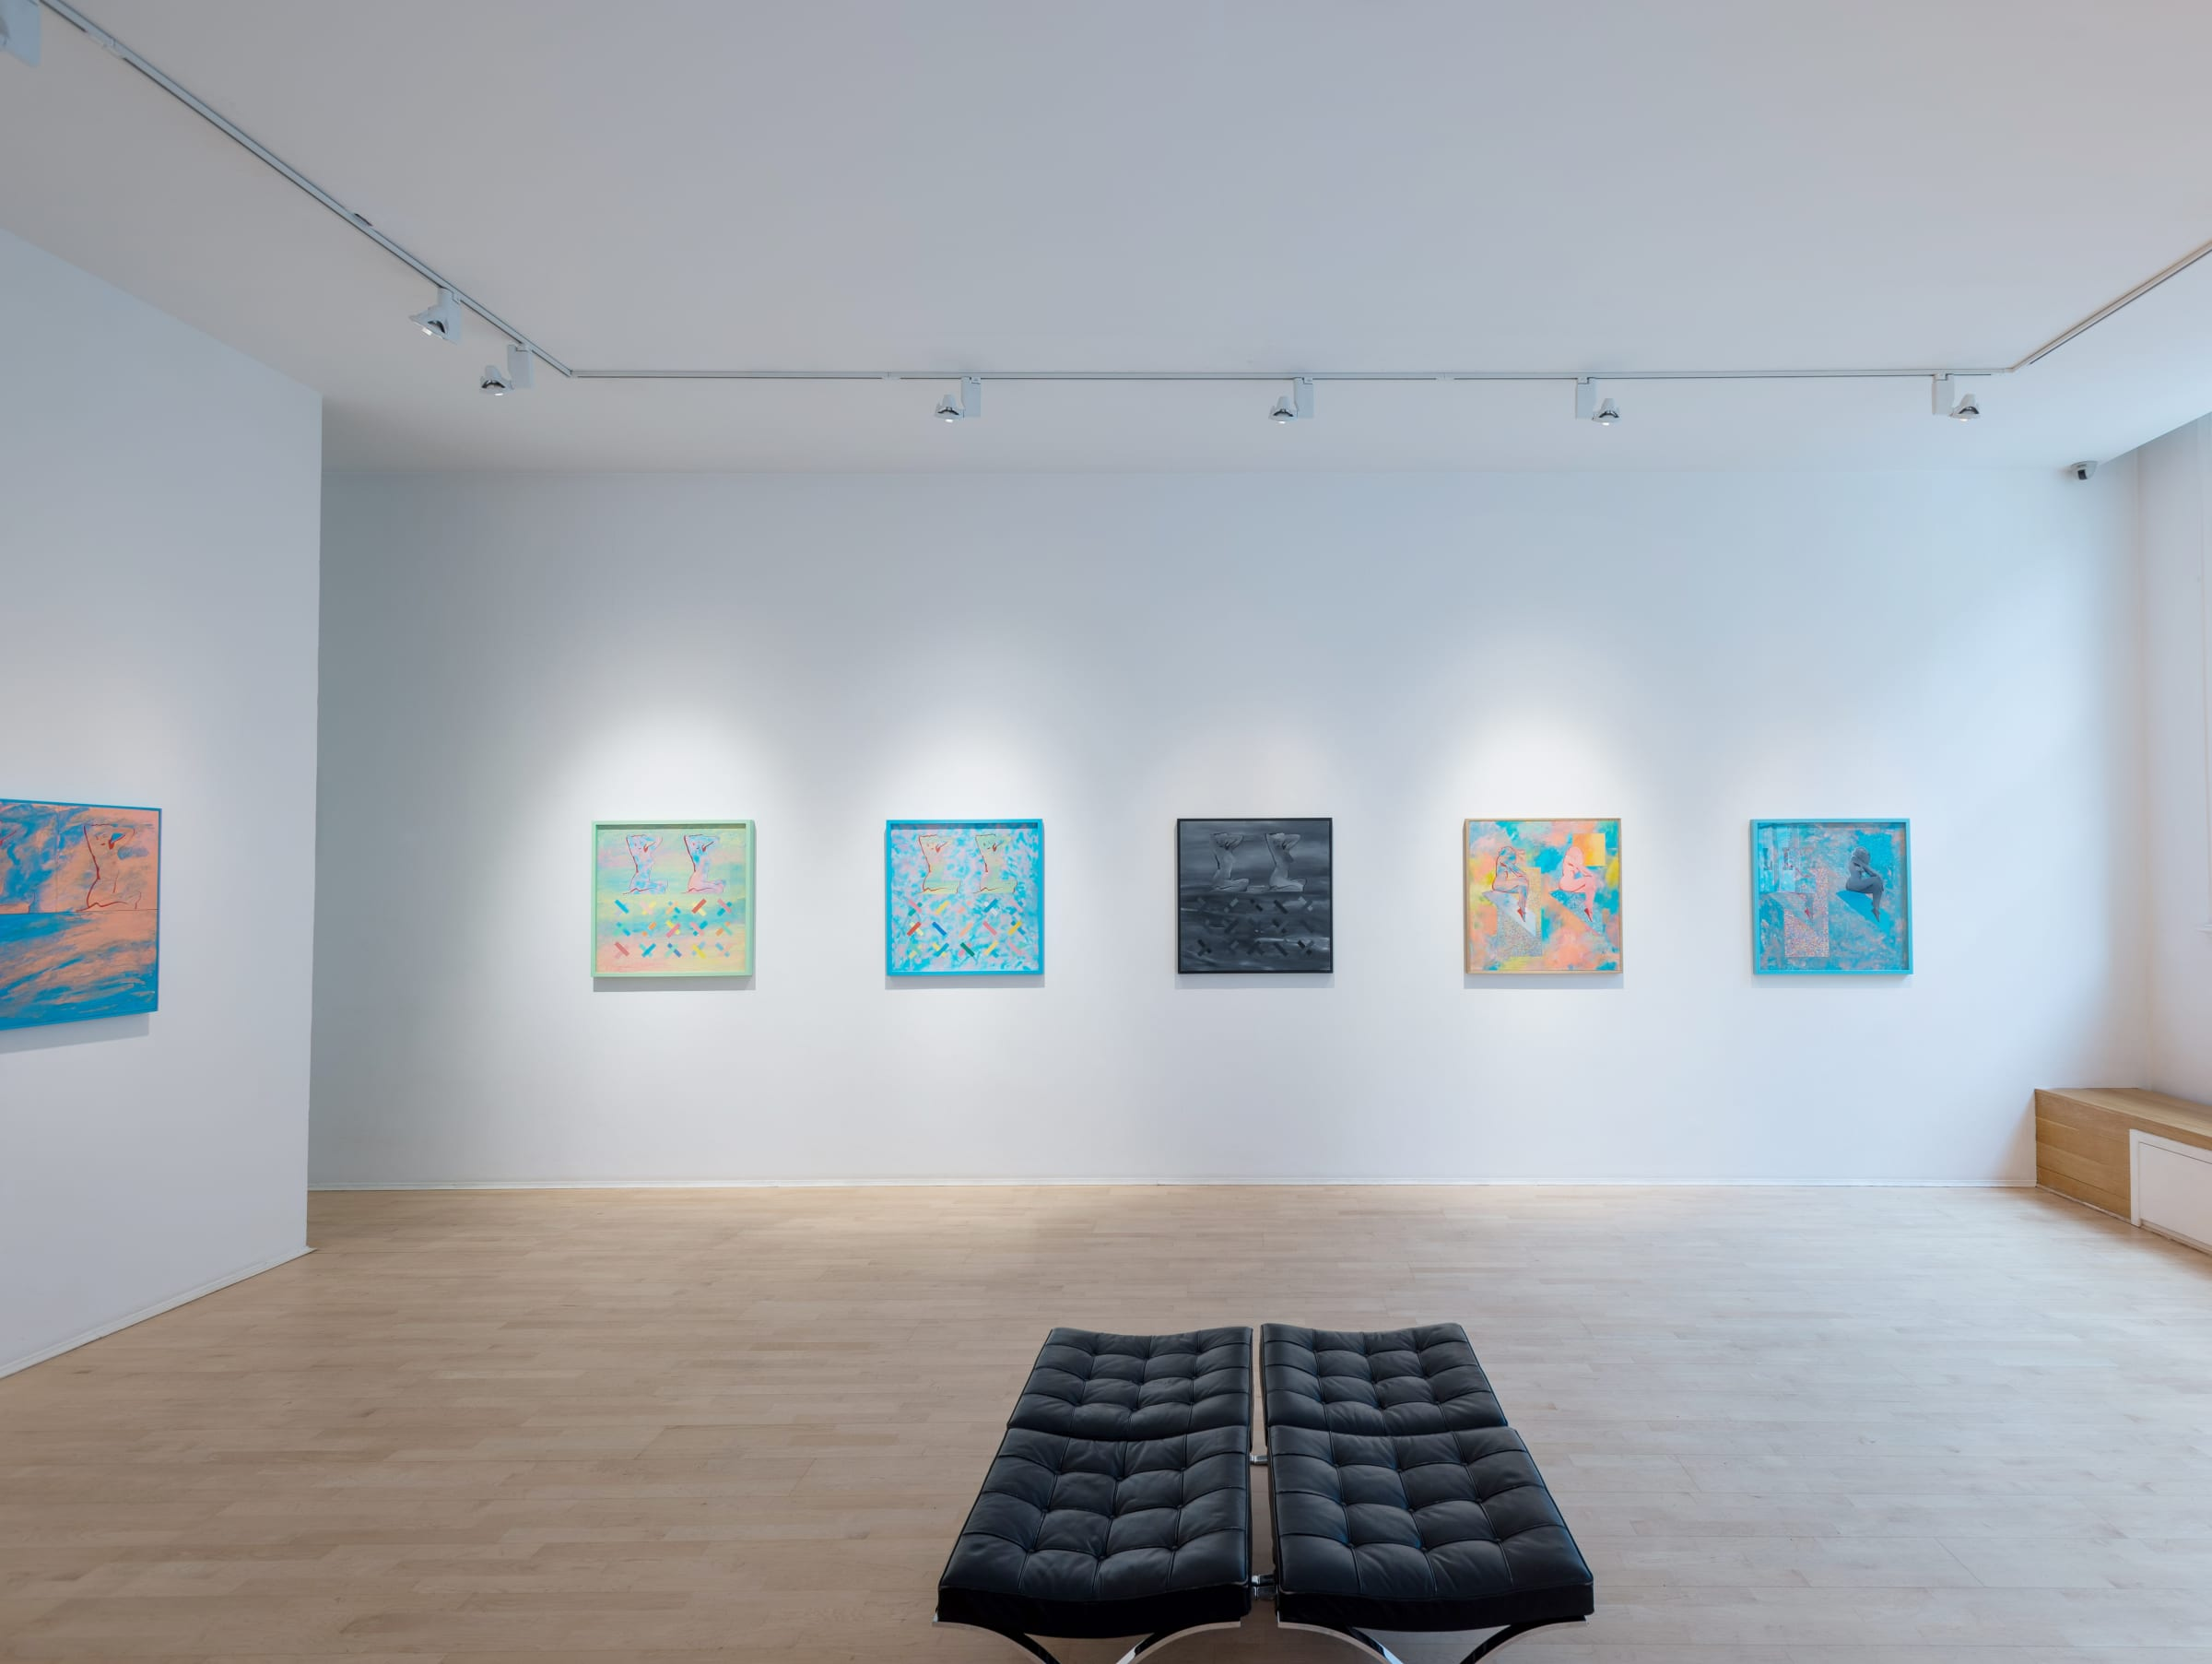 """<span class=""""link fancybox-details-link""""><a href=""""/exhibitions/318/works/image_standalone1626/"""">View Detail Page</a></span><p><strong>ANTONY DONALDSON</strong>   OF MEMORY OF OBLIVION   09 SEP - 09 OCT 2015   Installation view</p>"""